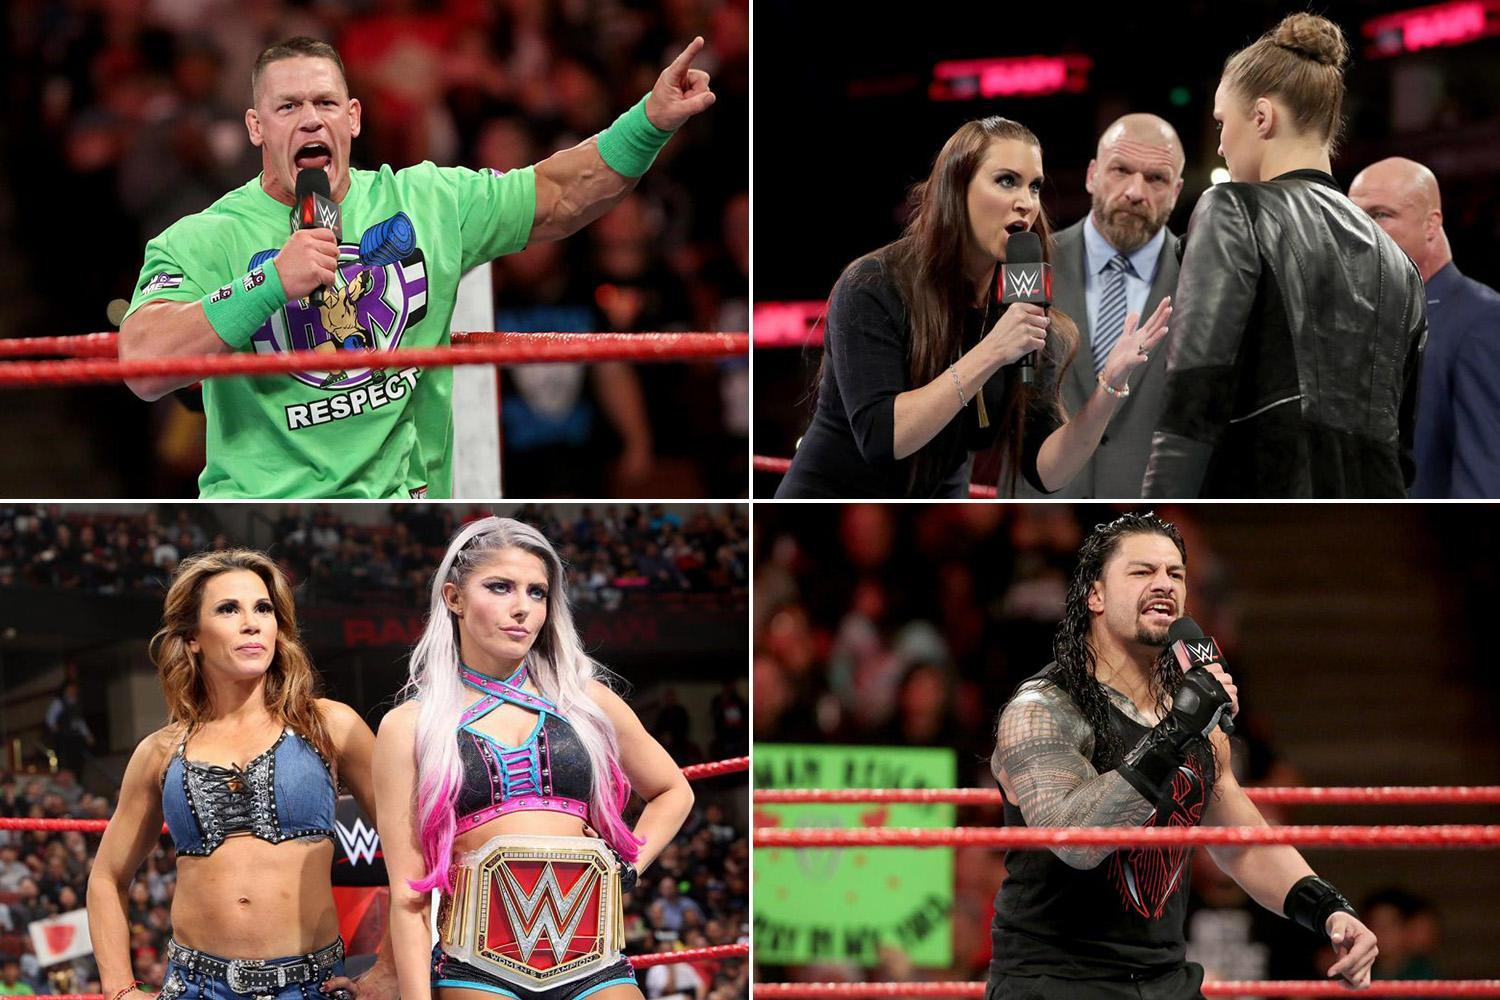 WWE Raw: Ronda Rousey squares up to The Authority, John Cena issues challenge and Roman Reigns lets rip on Brock Lesnar